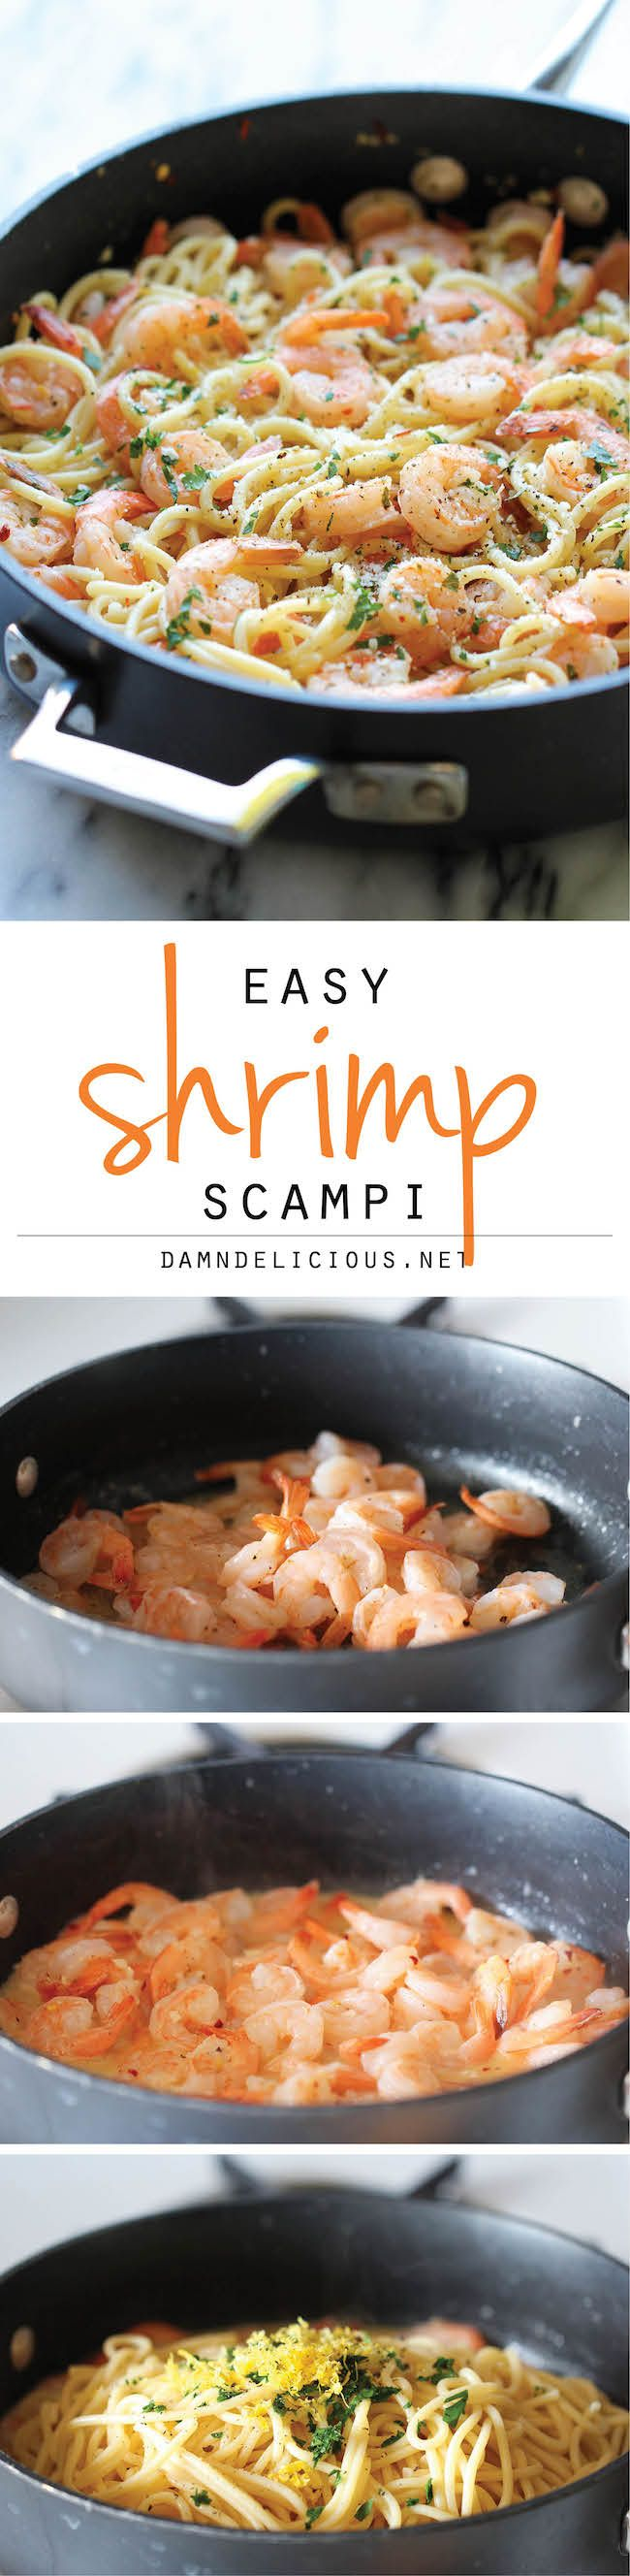 Shrimp Scampi - You won't believe how easy this comes together in just 15 minutes - perfect for those busy weeknights! http://food.jexshop.com/